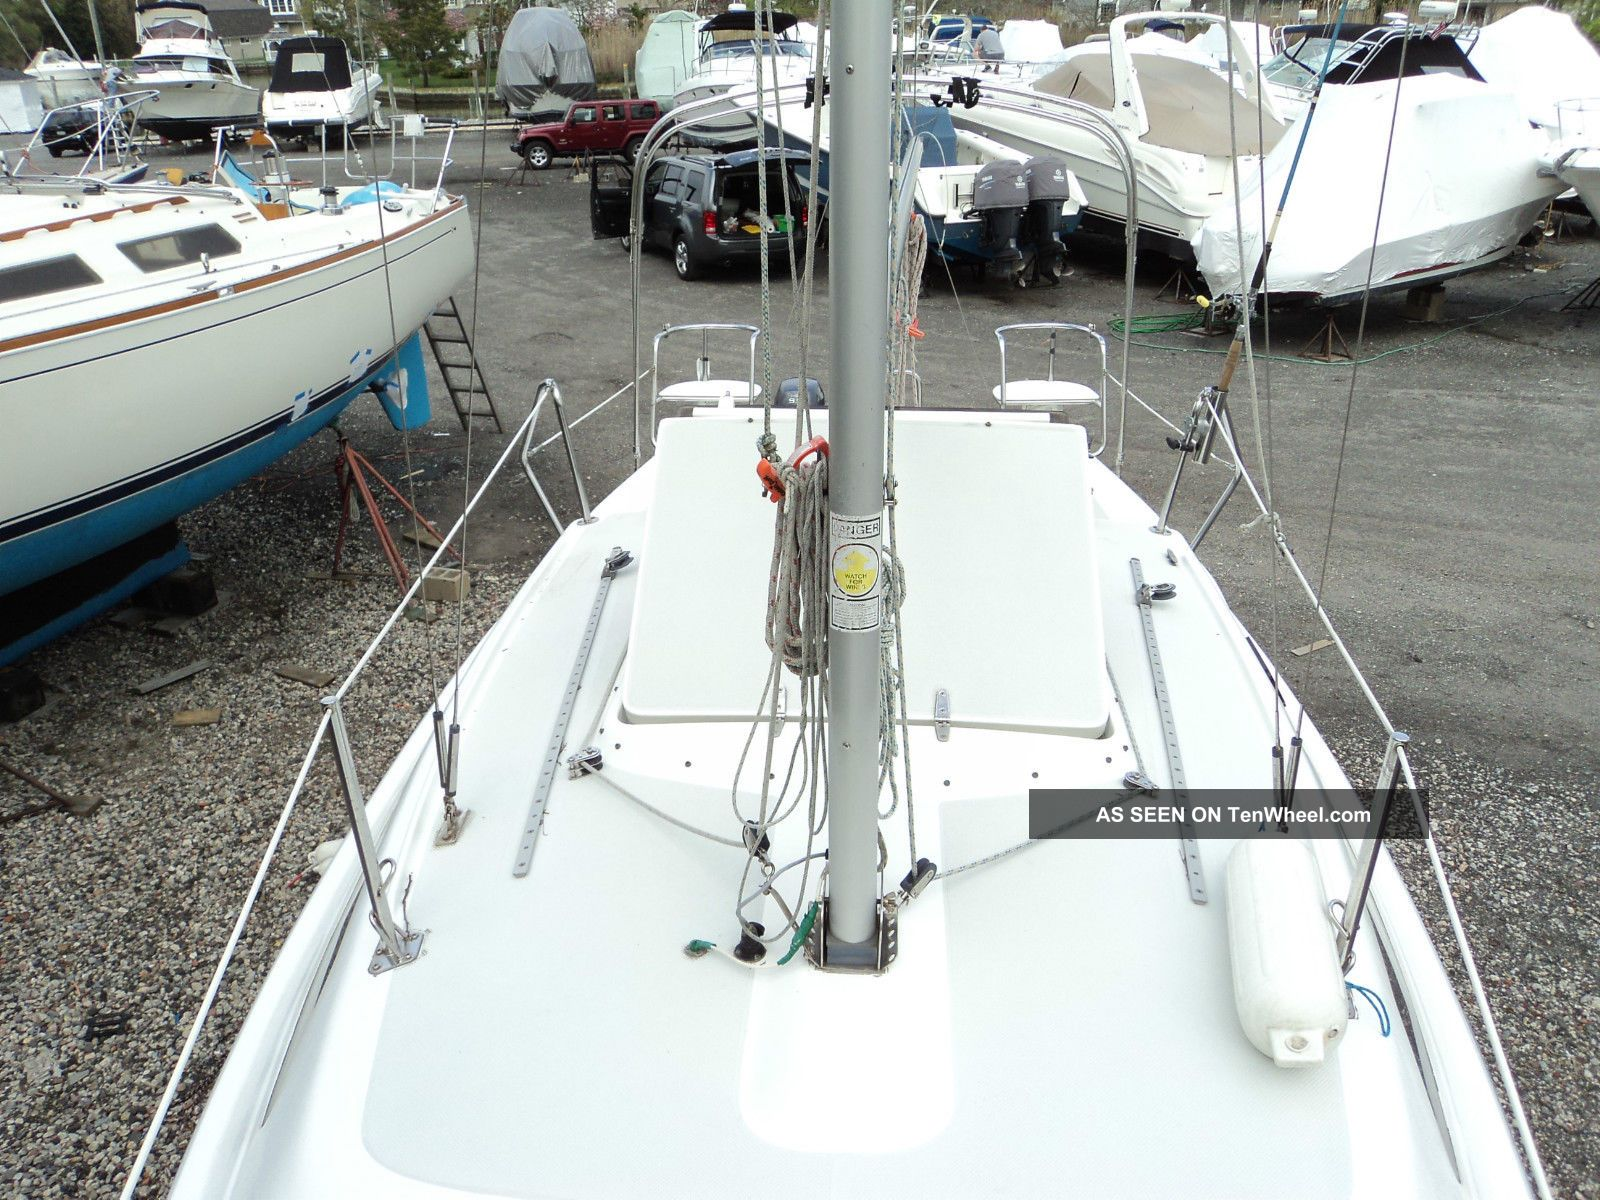 1998 Catalina 250 Wing Keel Sailboats 20-27 feet photo